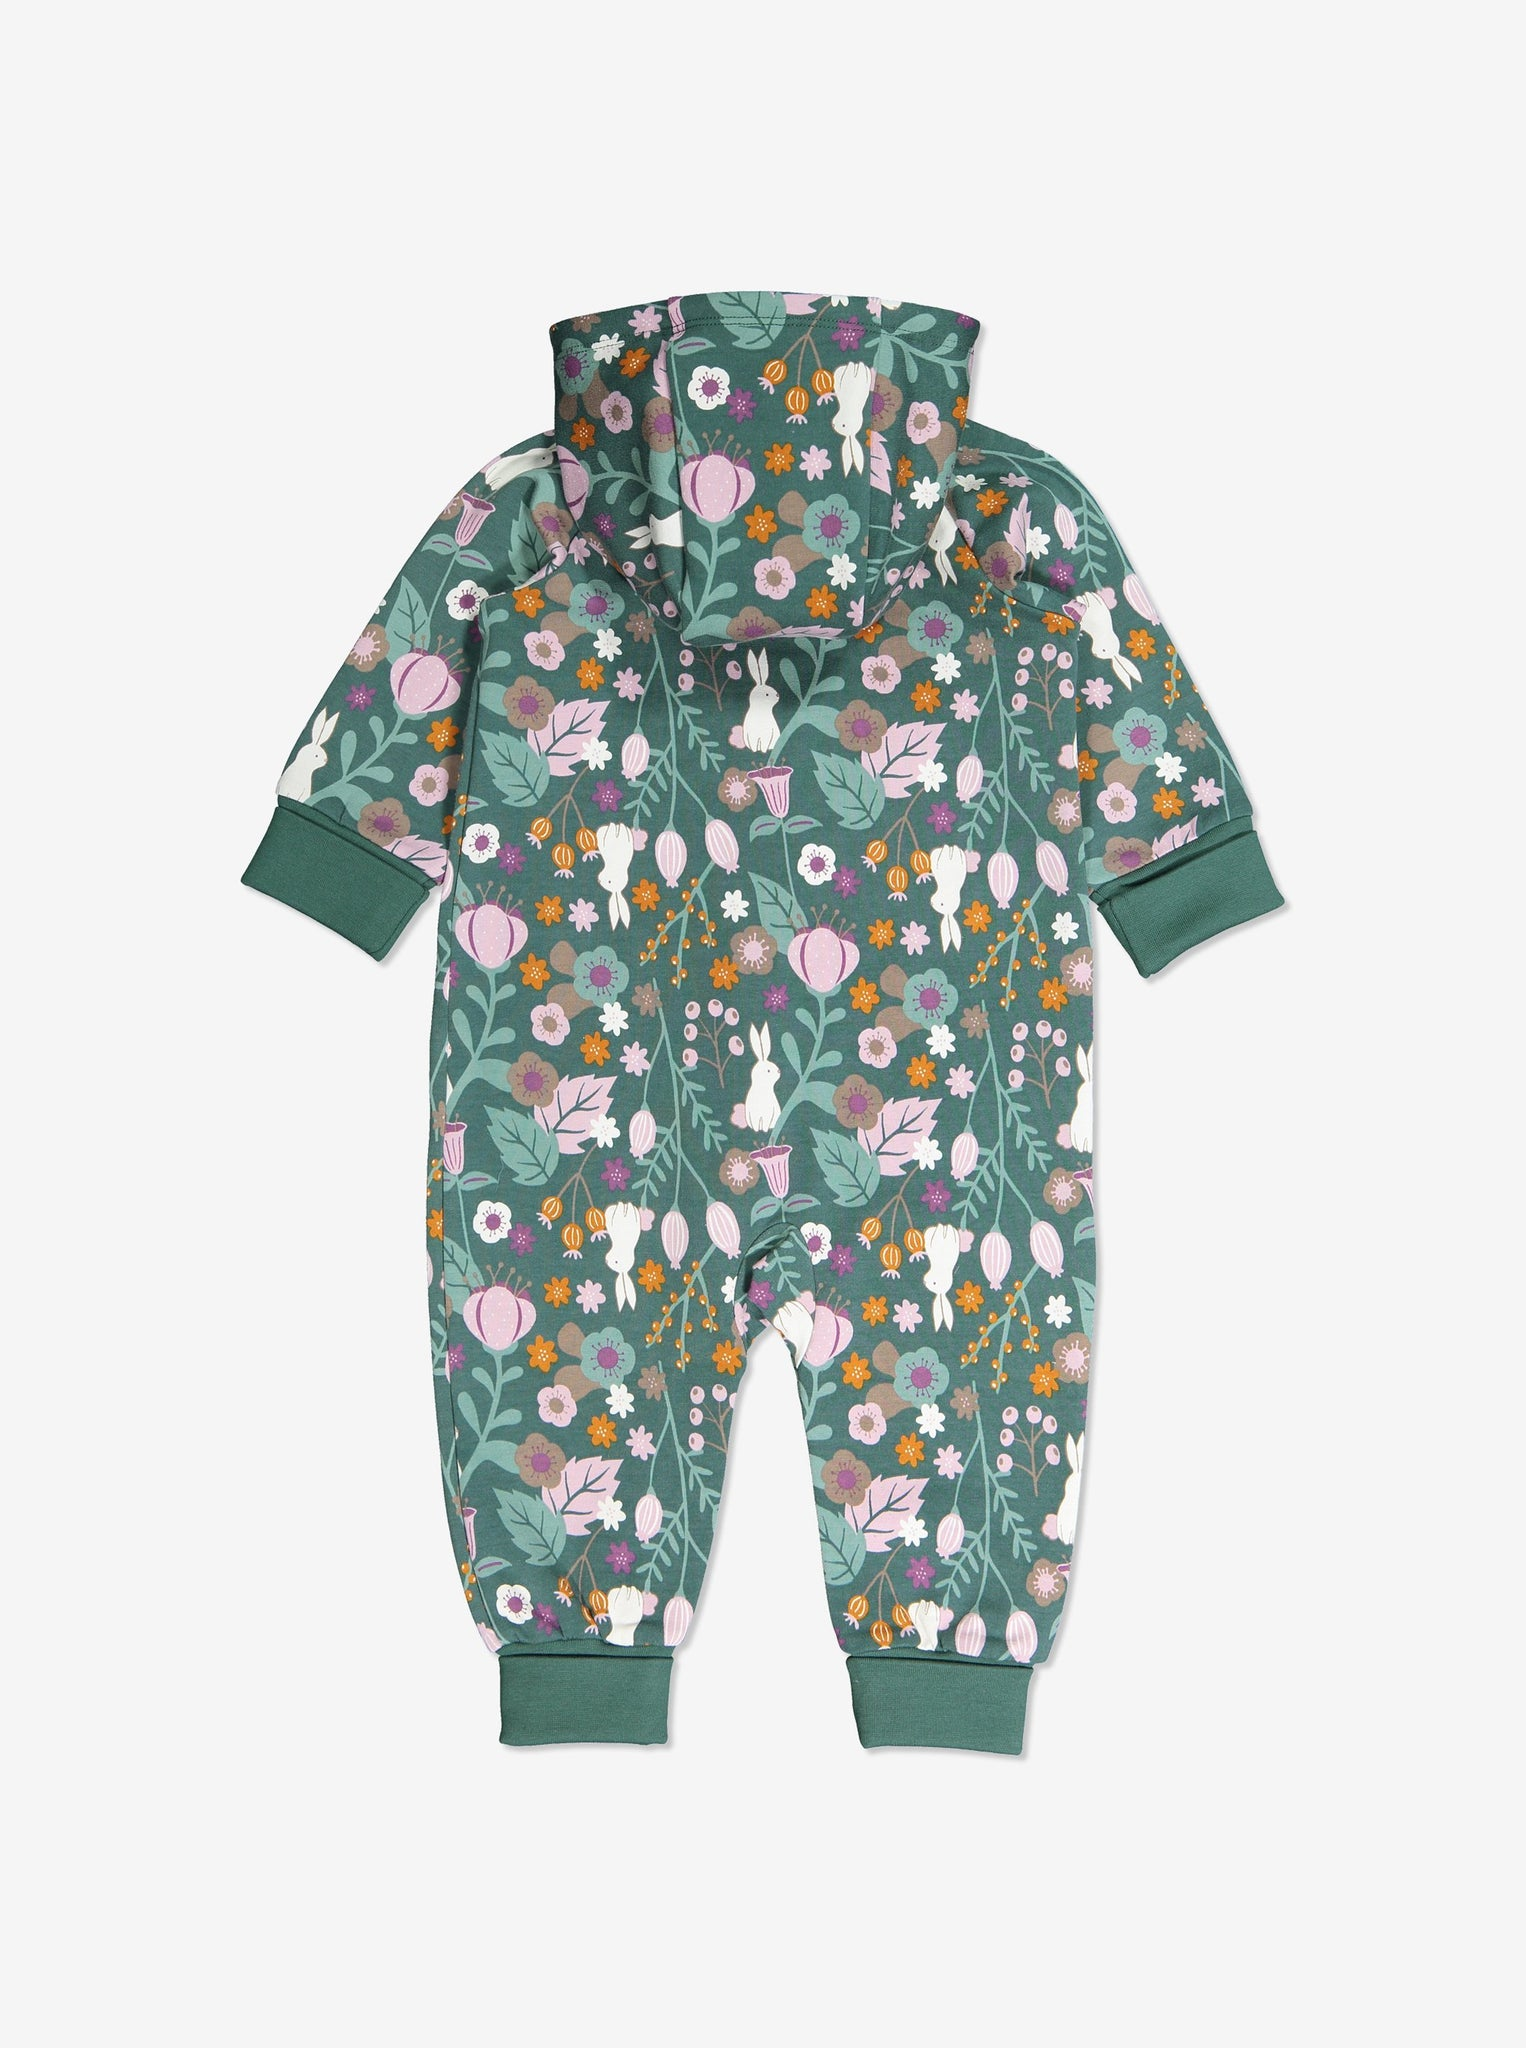 Back view of newborn baby onsie with Woodland print of flowers and bunnies in GOTS organic cotton. With cosy lined hood and full-length zip for speedy dressing and foldable ribbed cuffs for growing room